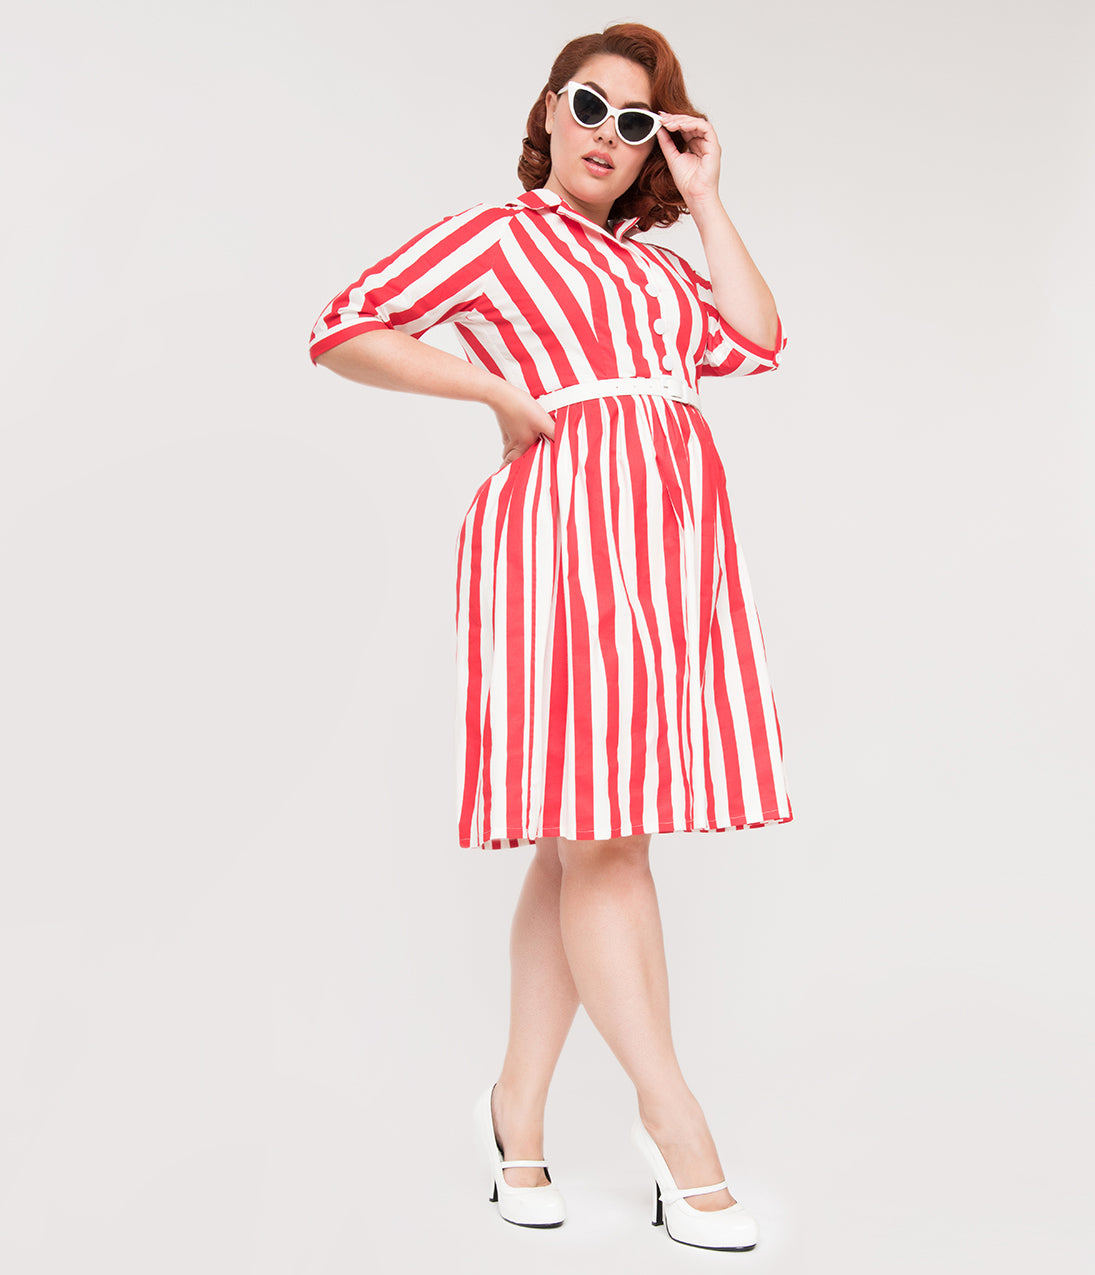 1950s Swing Dresses | 50s Swing Dress Plus Size 1950S Style Red  White Stripe Patty Cotton Flare Dress $98.00 AT vintagedancer.com